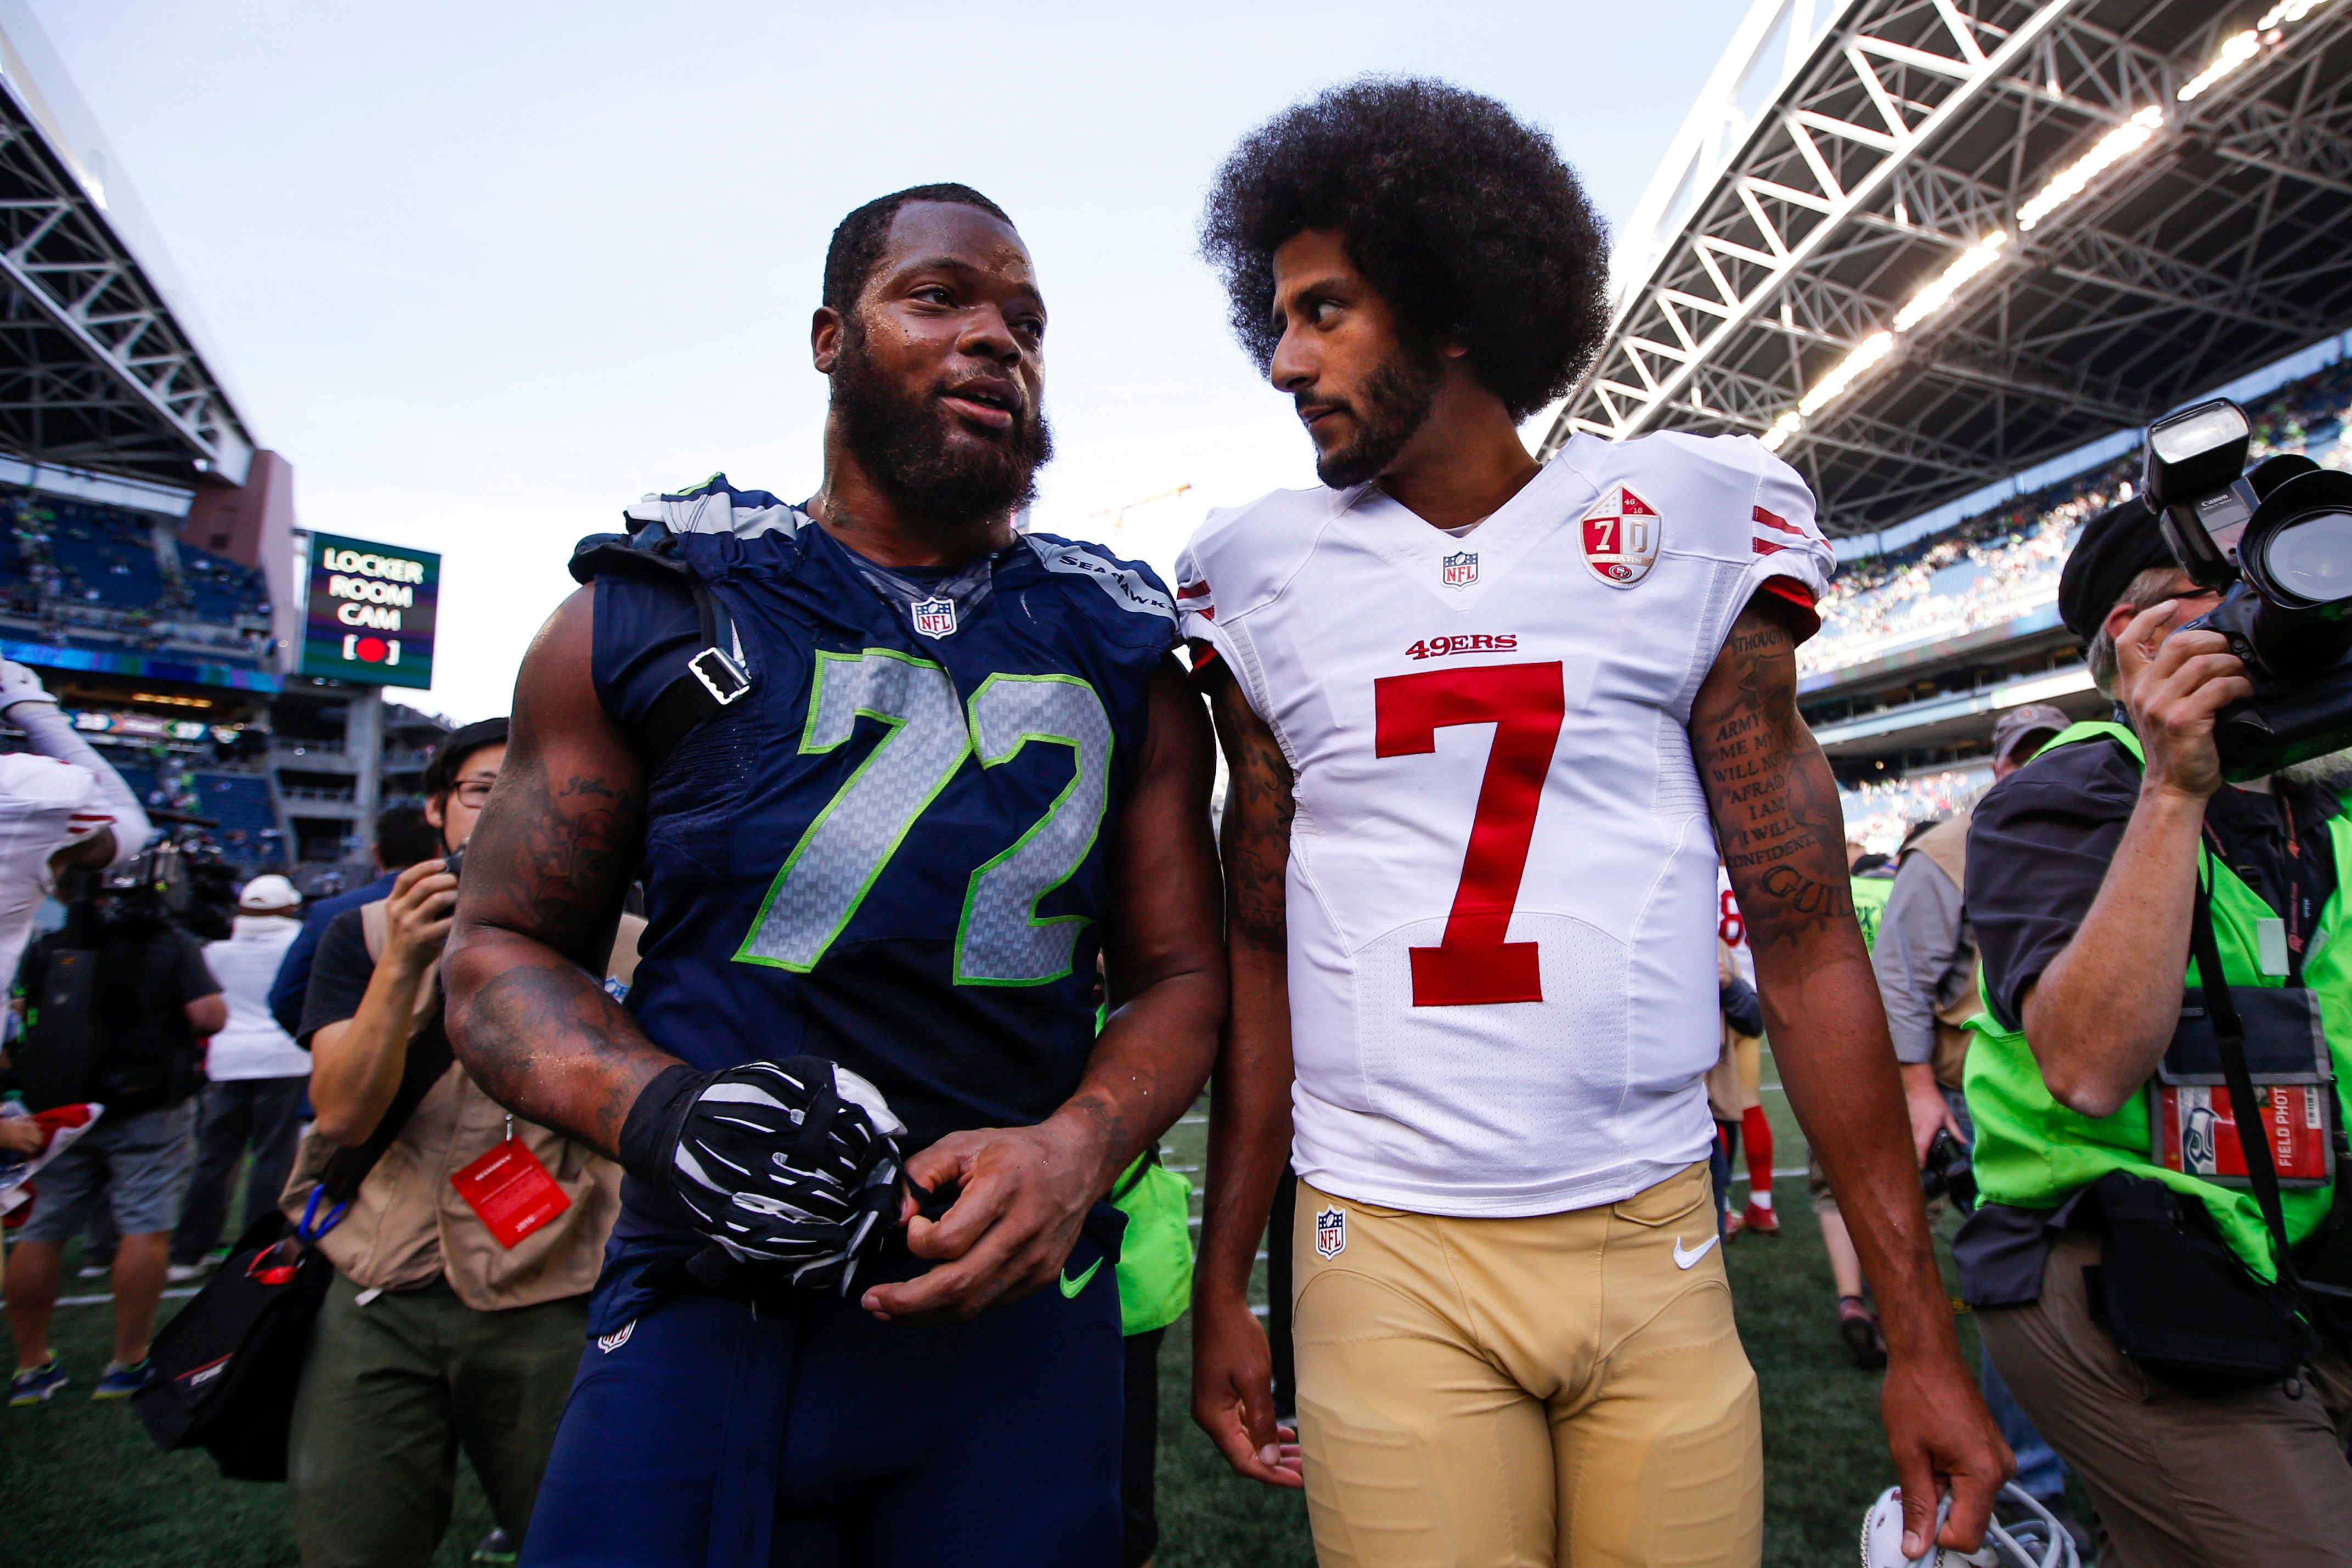 Sep 25, 2016; Seattle, WA, USA; San Francisco 49ers quarterback Colin Kaepernick (7) and Seattle Seahawks defensive end Michael Bennett (72) talk following a 37-18 Seattle victory at CenturyLink Field. Mandatory Credit: Joe Nicholson-USA TODAY Sports